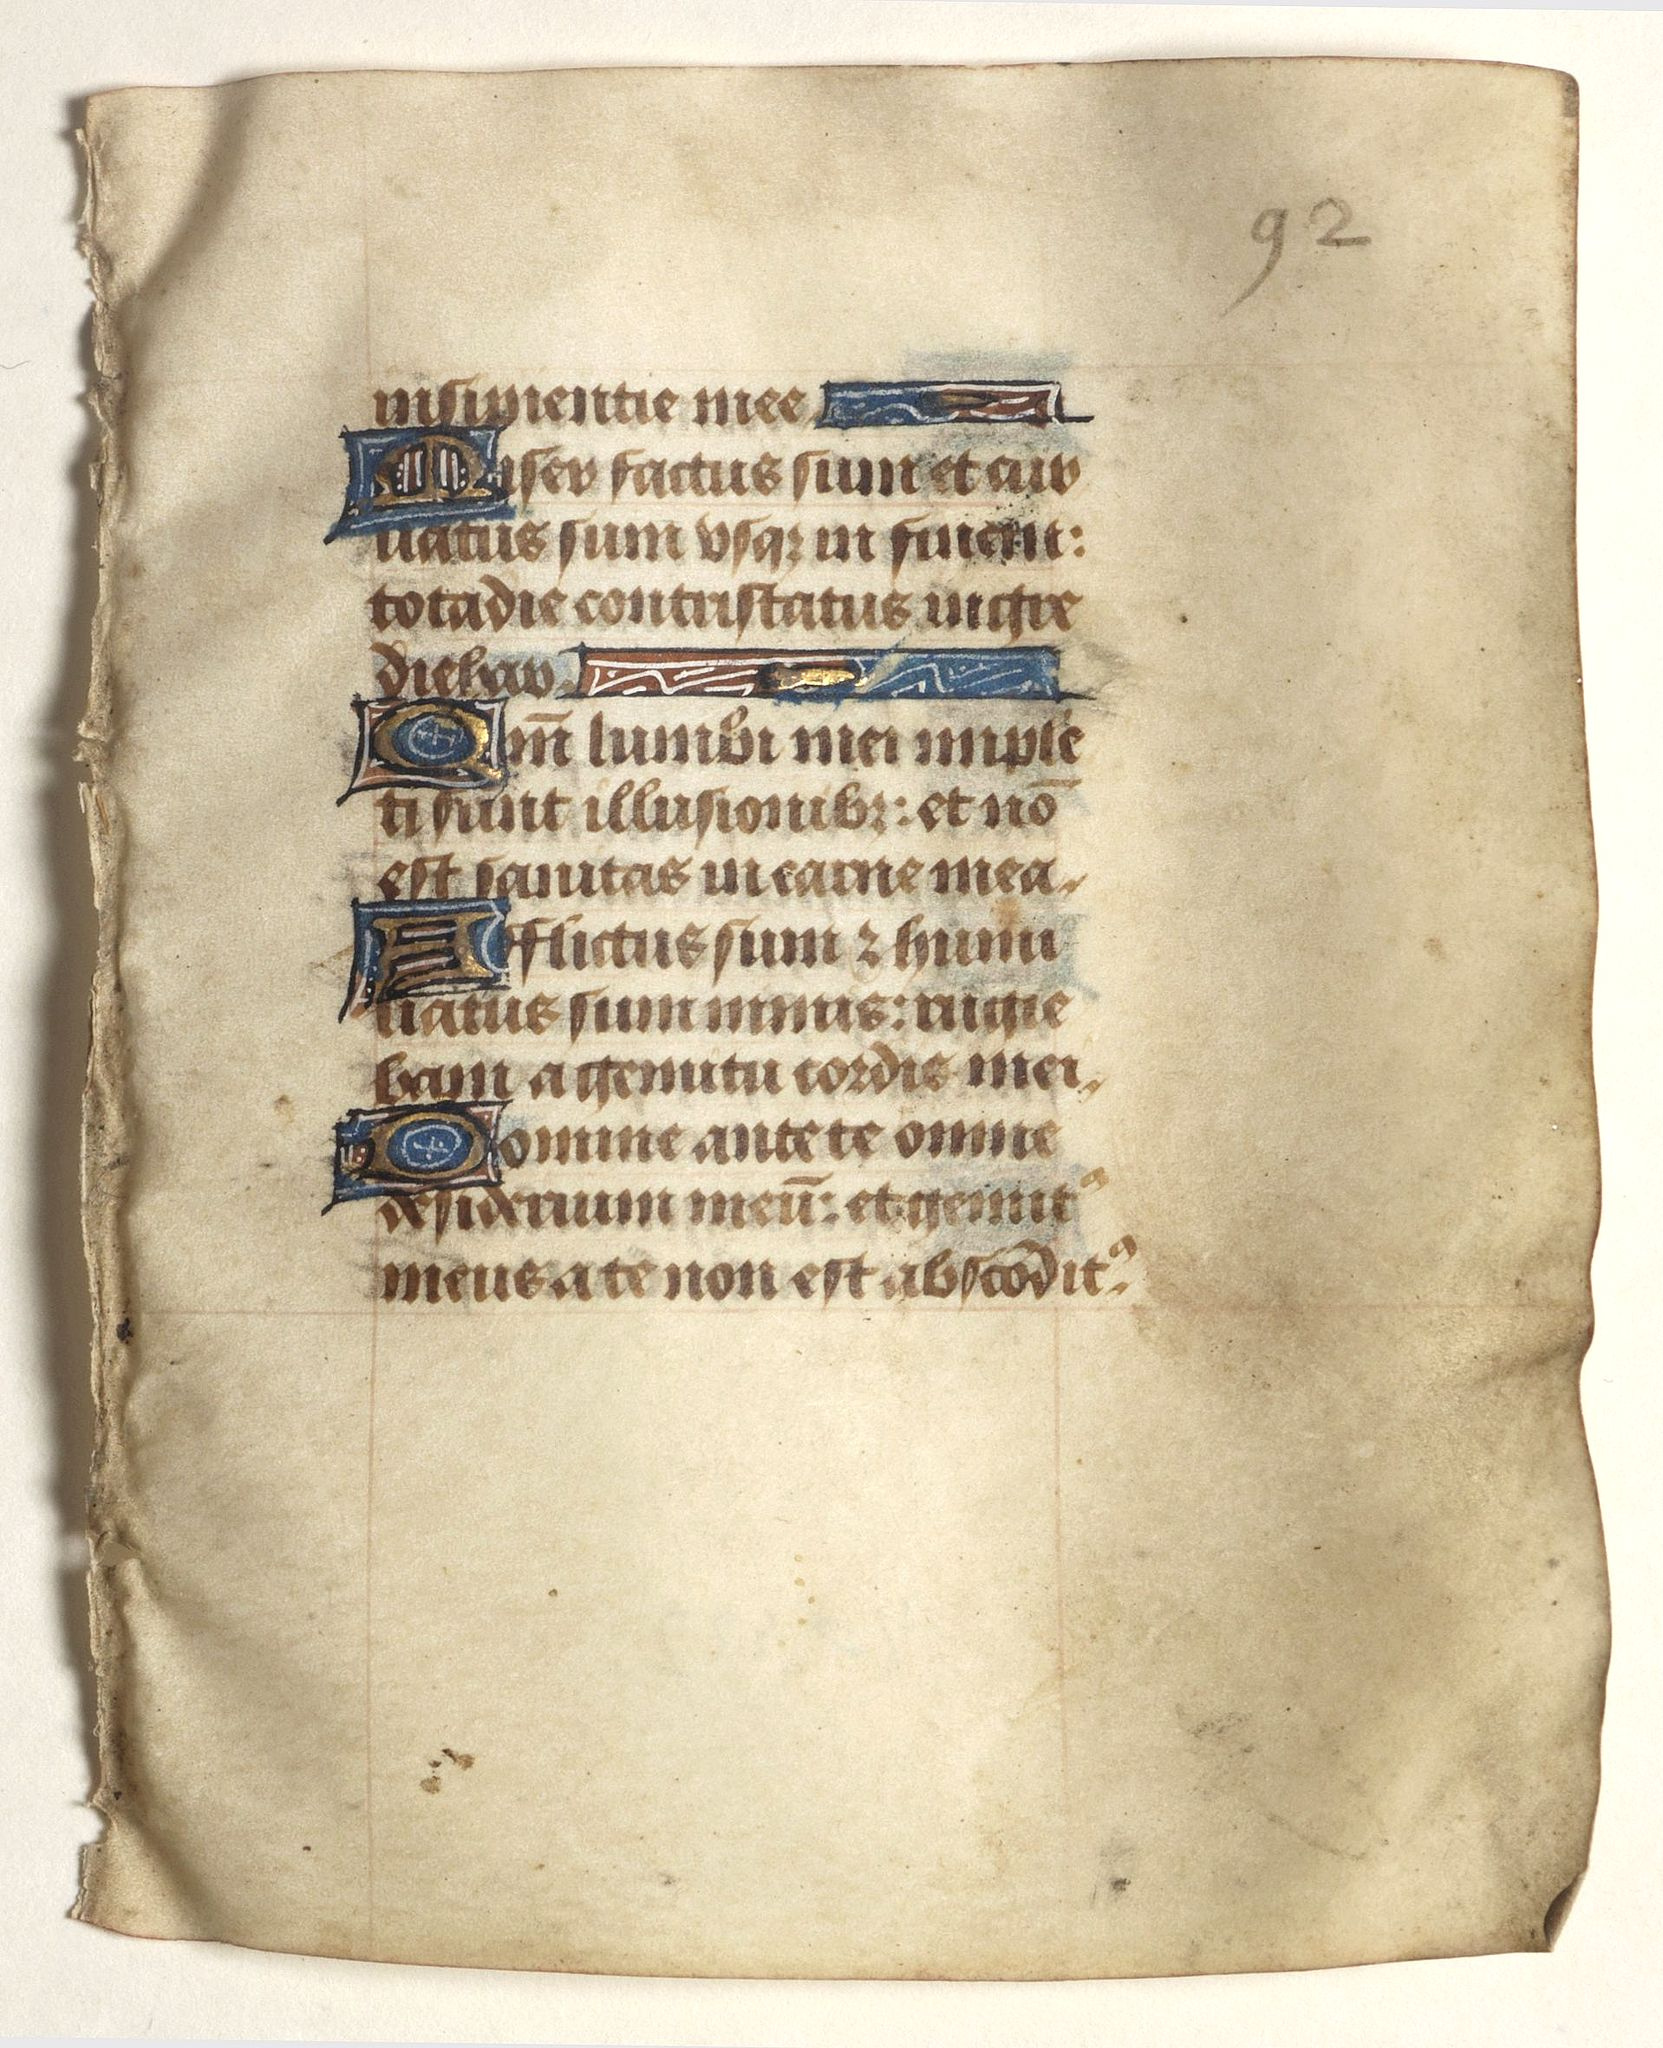 BOOK OF HOURS -  Leaf on vellum from a small manuscript Book of Hours.